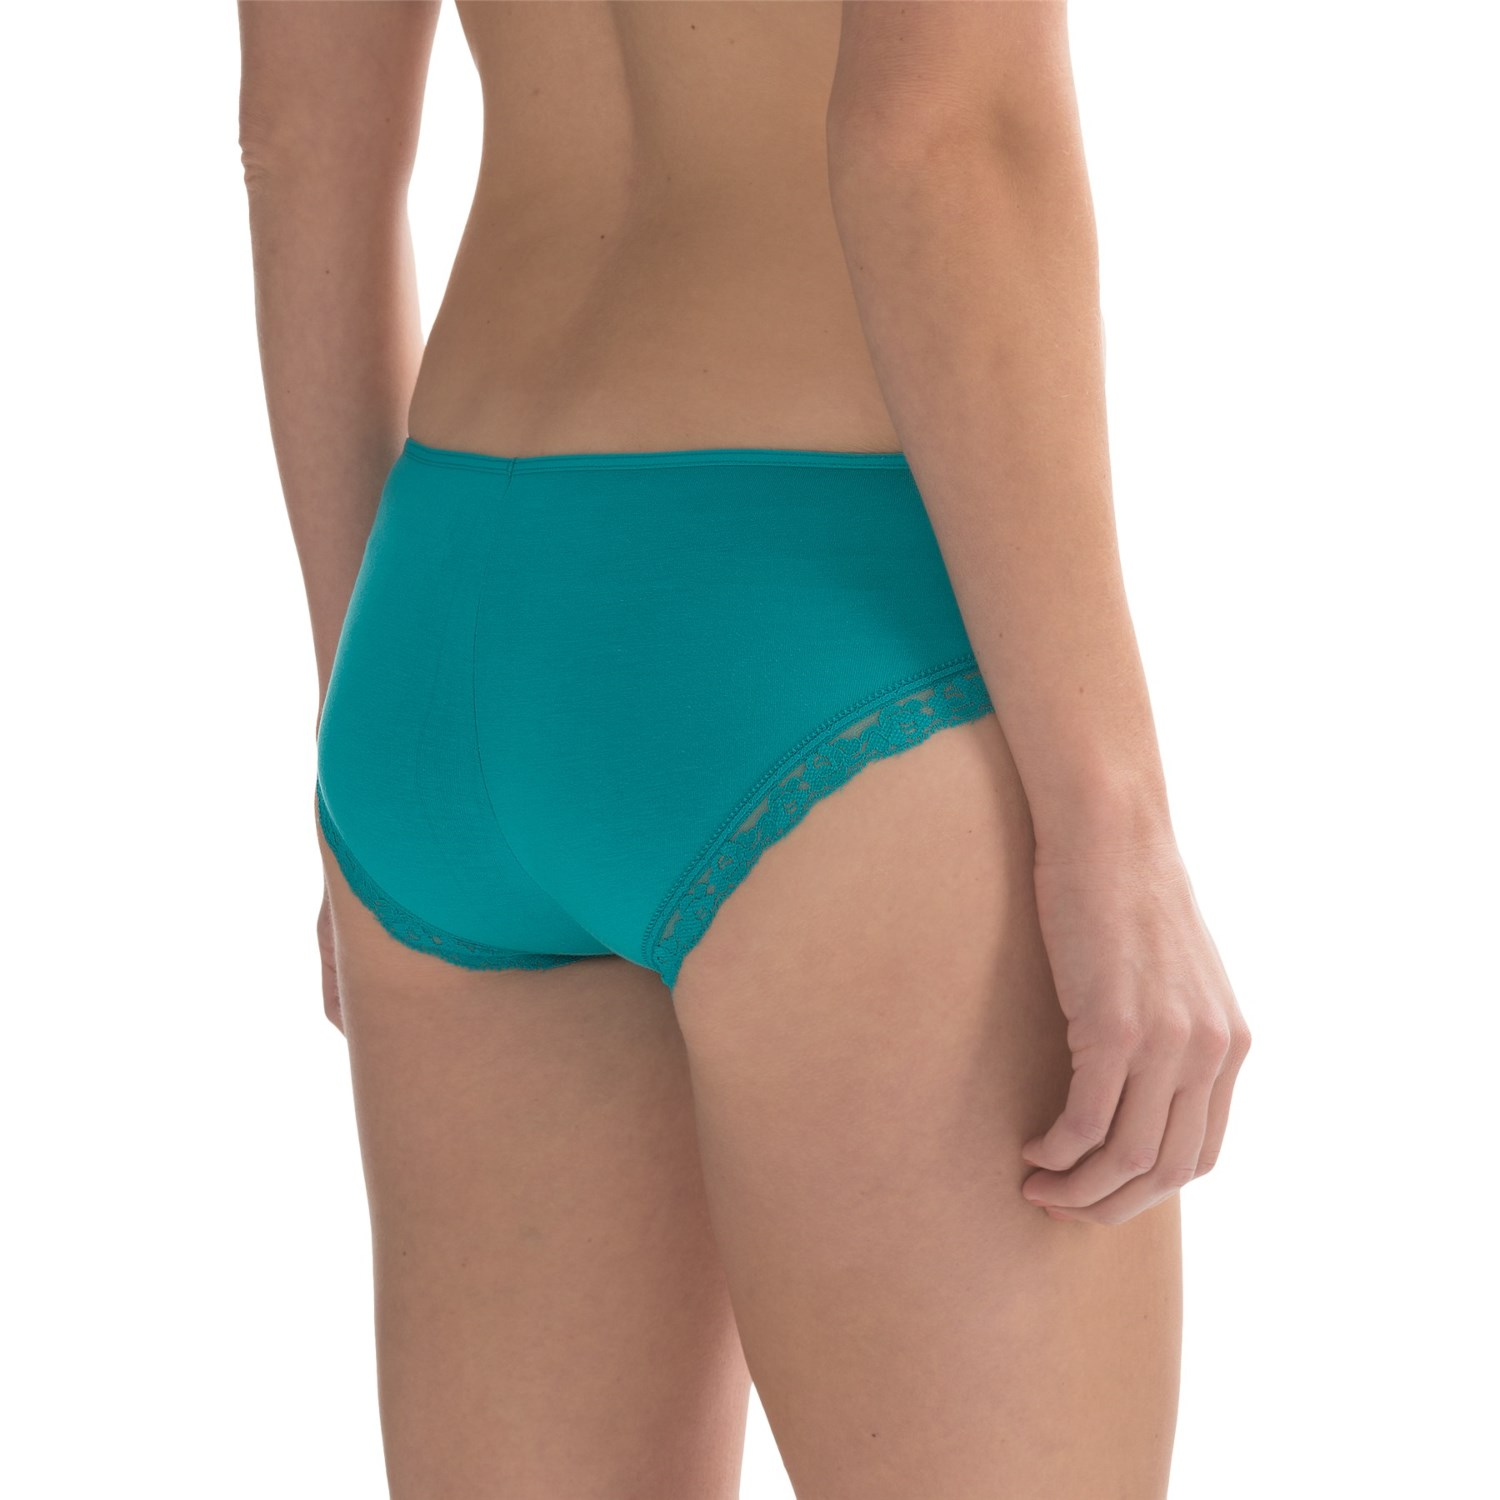 St. Eve Pretty Hipster Panties (For Women) - Save 62%